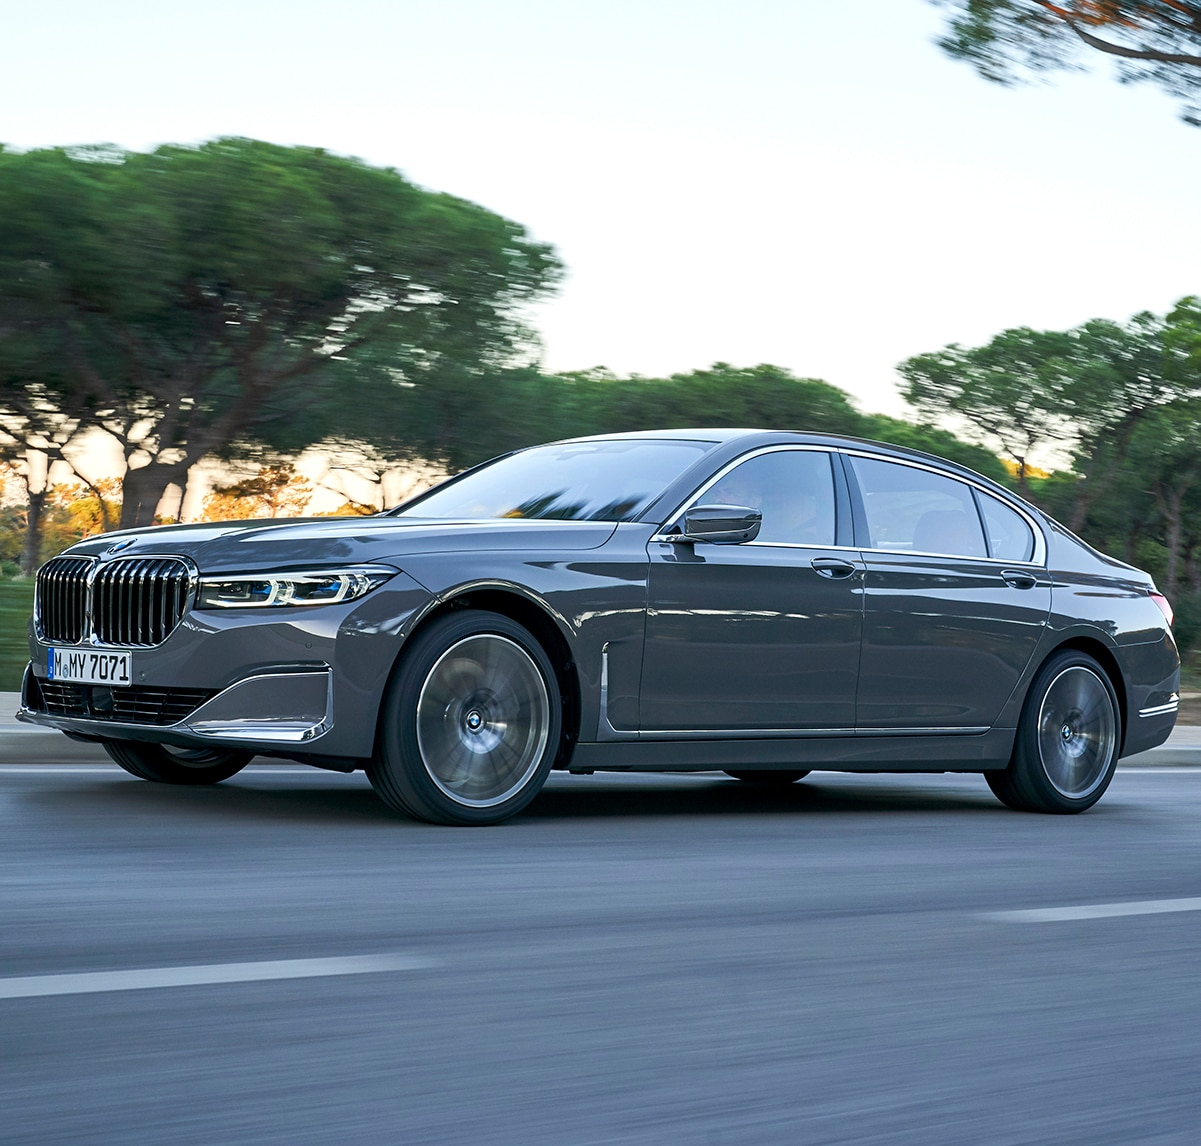 Style and Performance of the 2020 BMW 7 Series at BMW of Rockville in Rockville